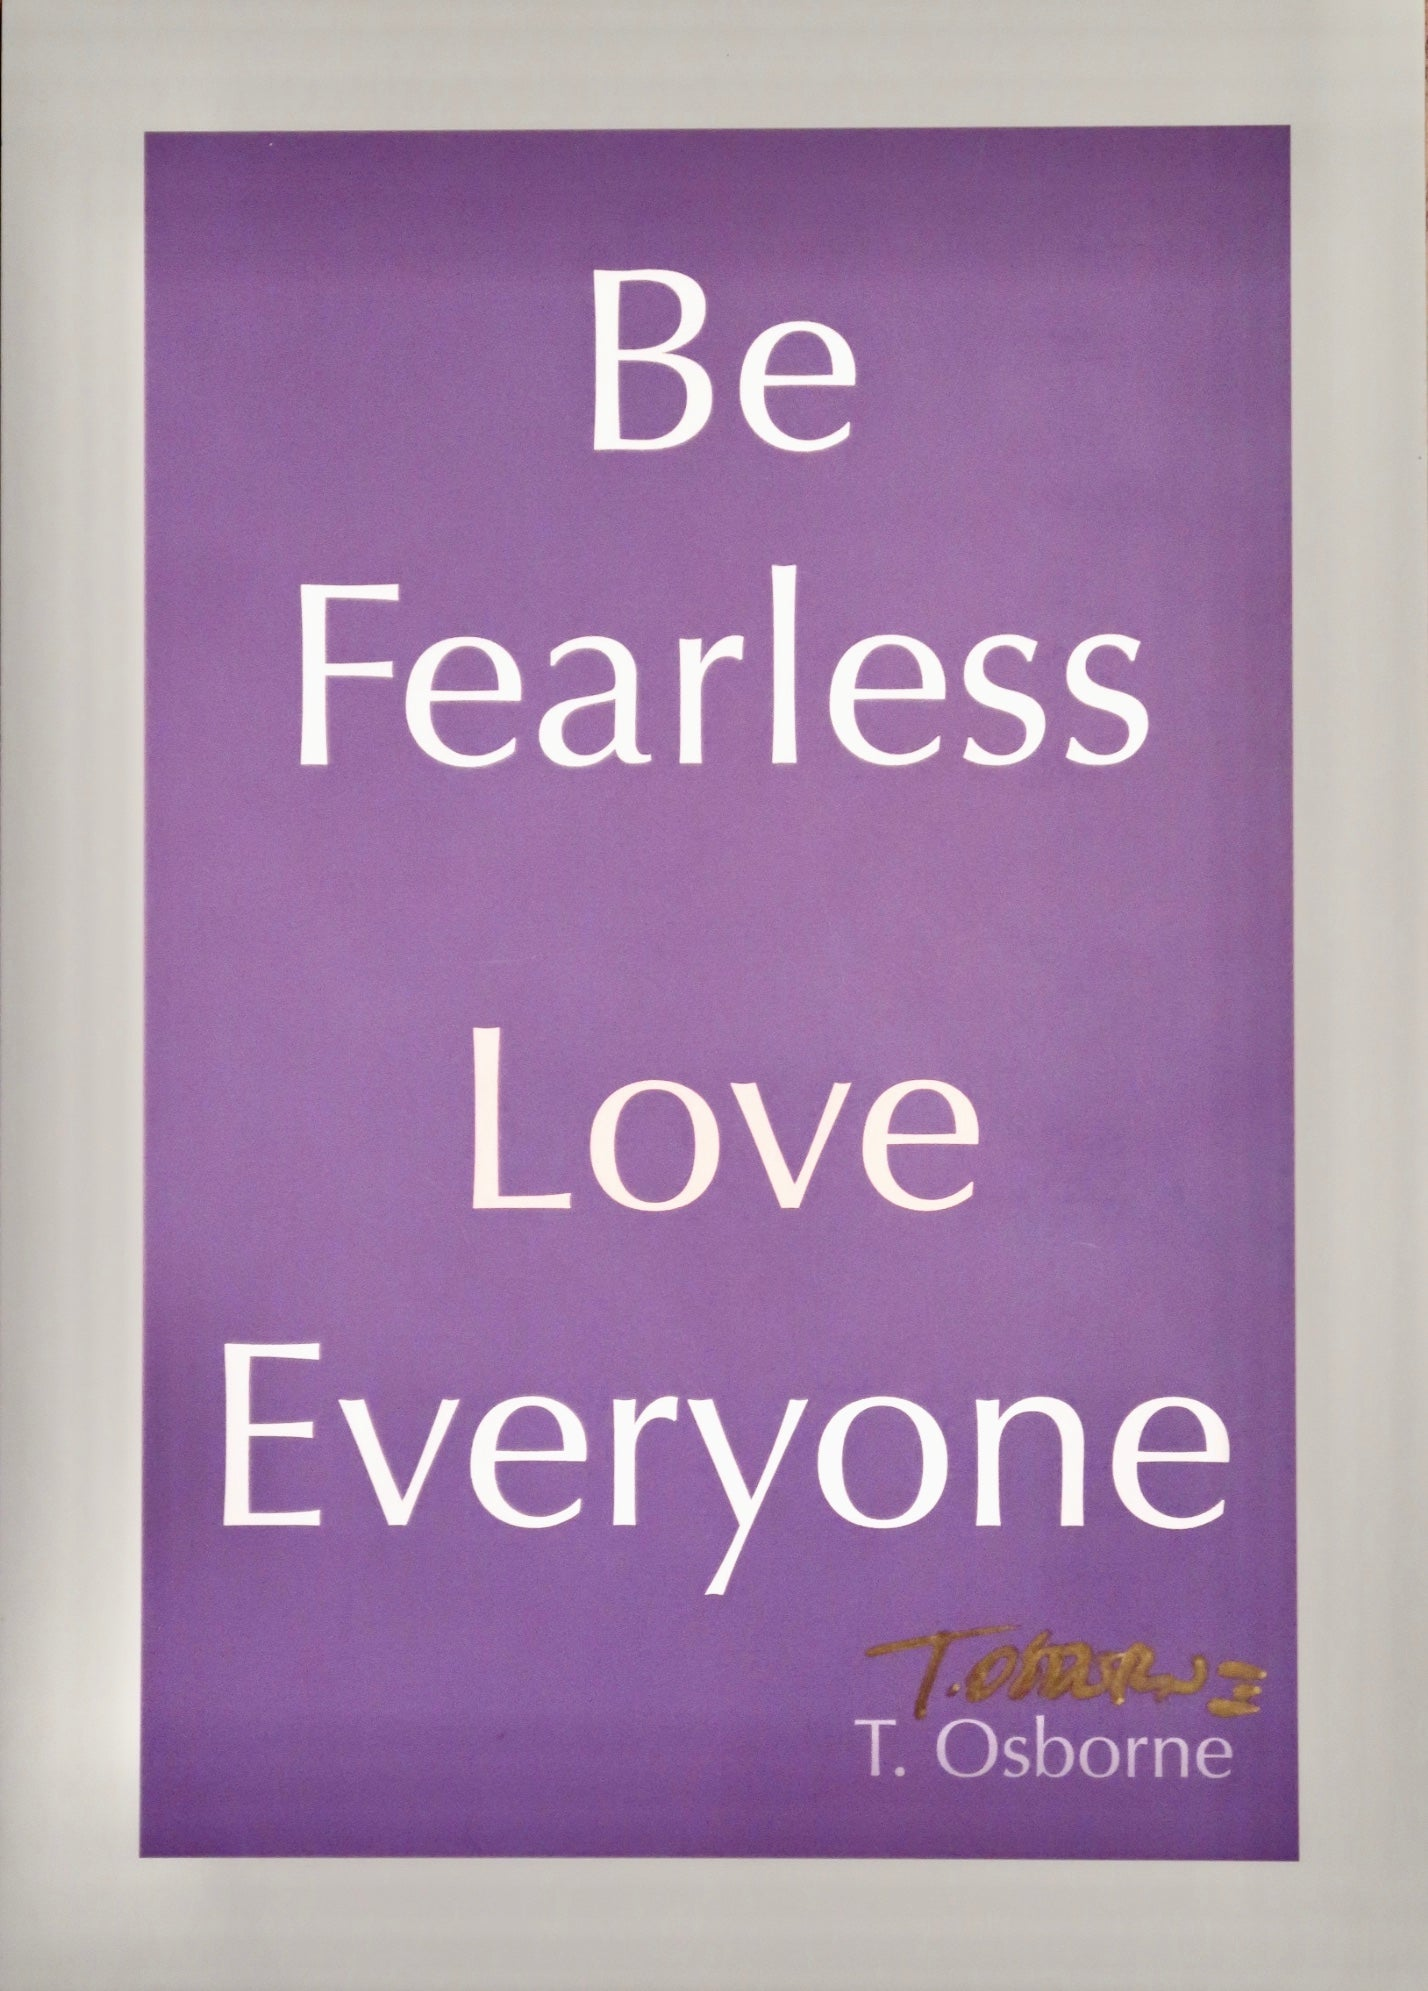 Be Fearless Love Everyone Poster by T. Osbourne